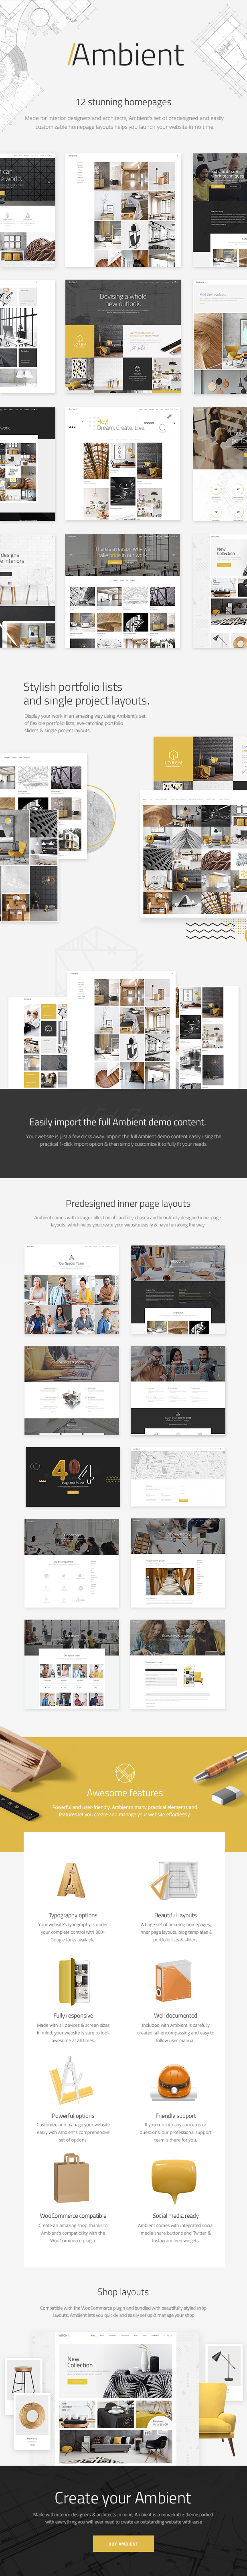 Ambient - A Contemporary Theme for Interior Design, Decoration, and Architecture (Portfolio) Ambient - A Contemporary Theme for Interior Design, Decoration, and Architecture (Portfolio) 01a